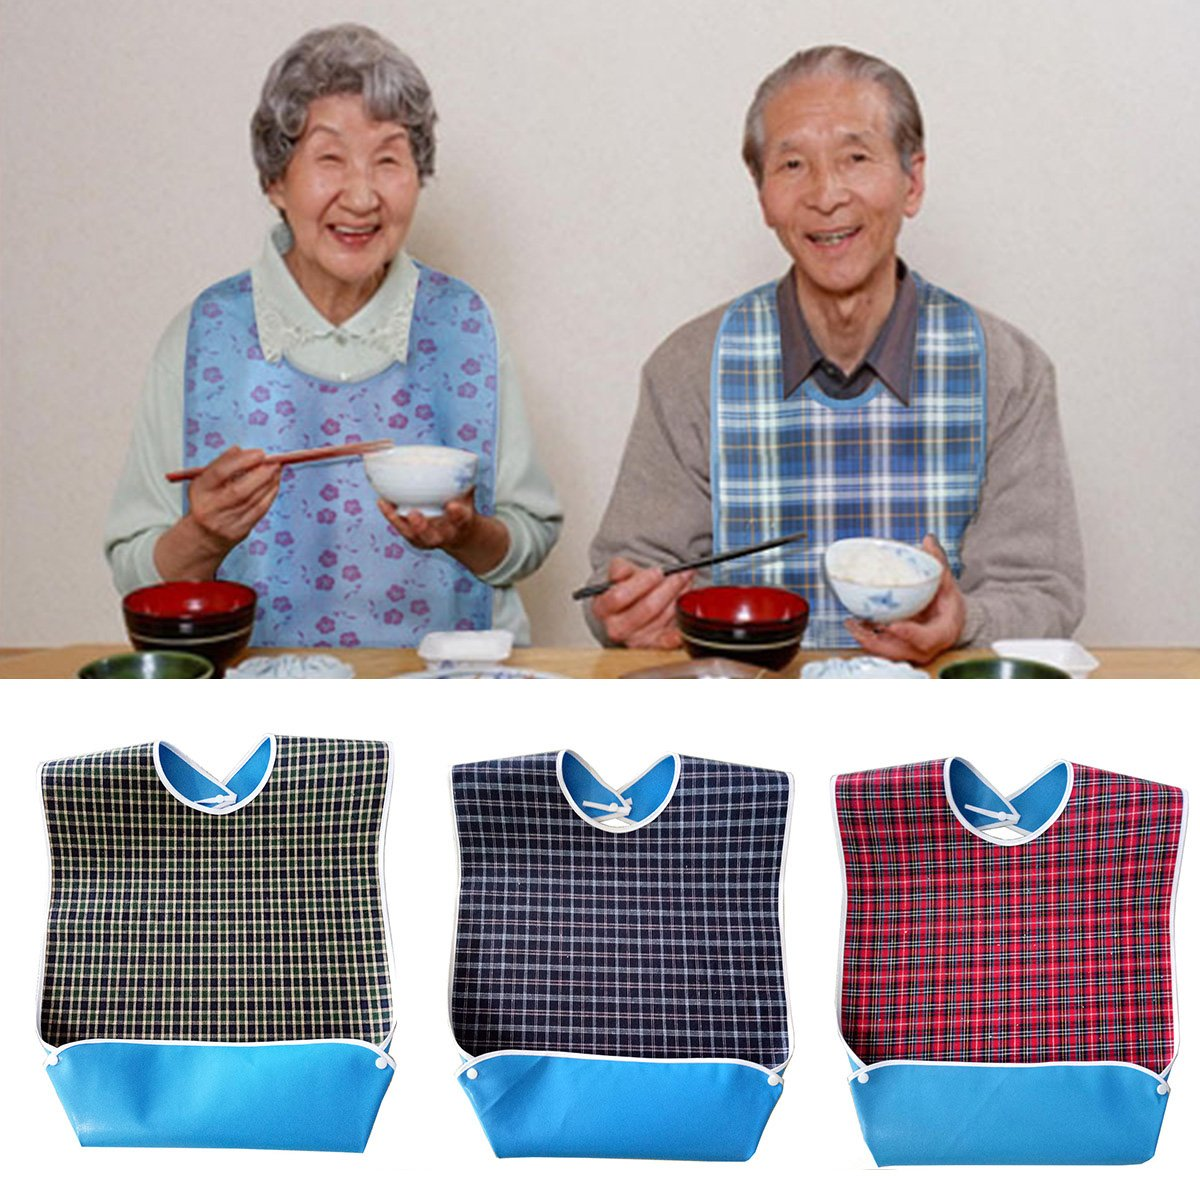 Adult Bib with Optional Crumb Catcher, Waterproof Backing Mealtime Clothing Protector Adult Aid Apron with Snaps for Elderly Patient Senior Eating - 3 Pack by oenbopo